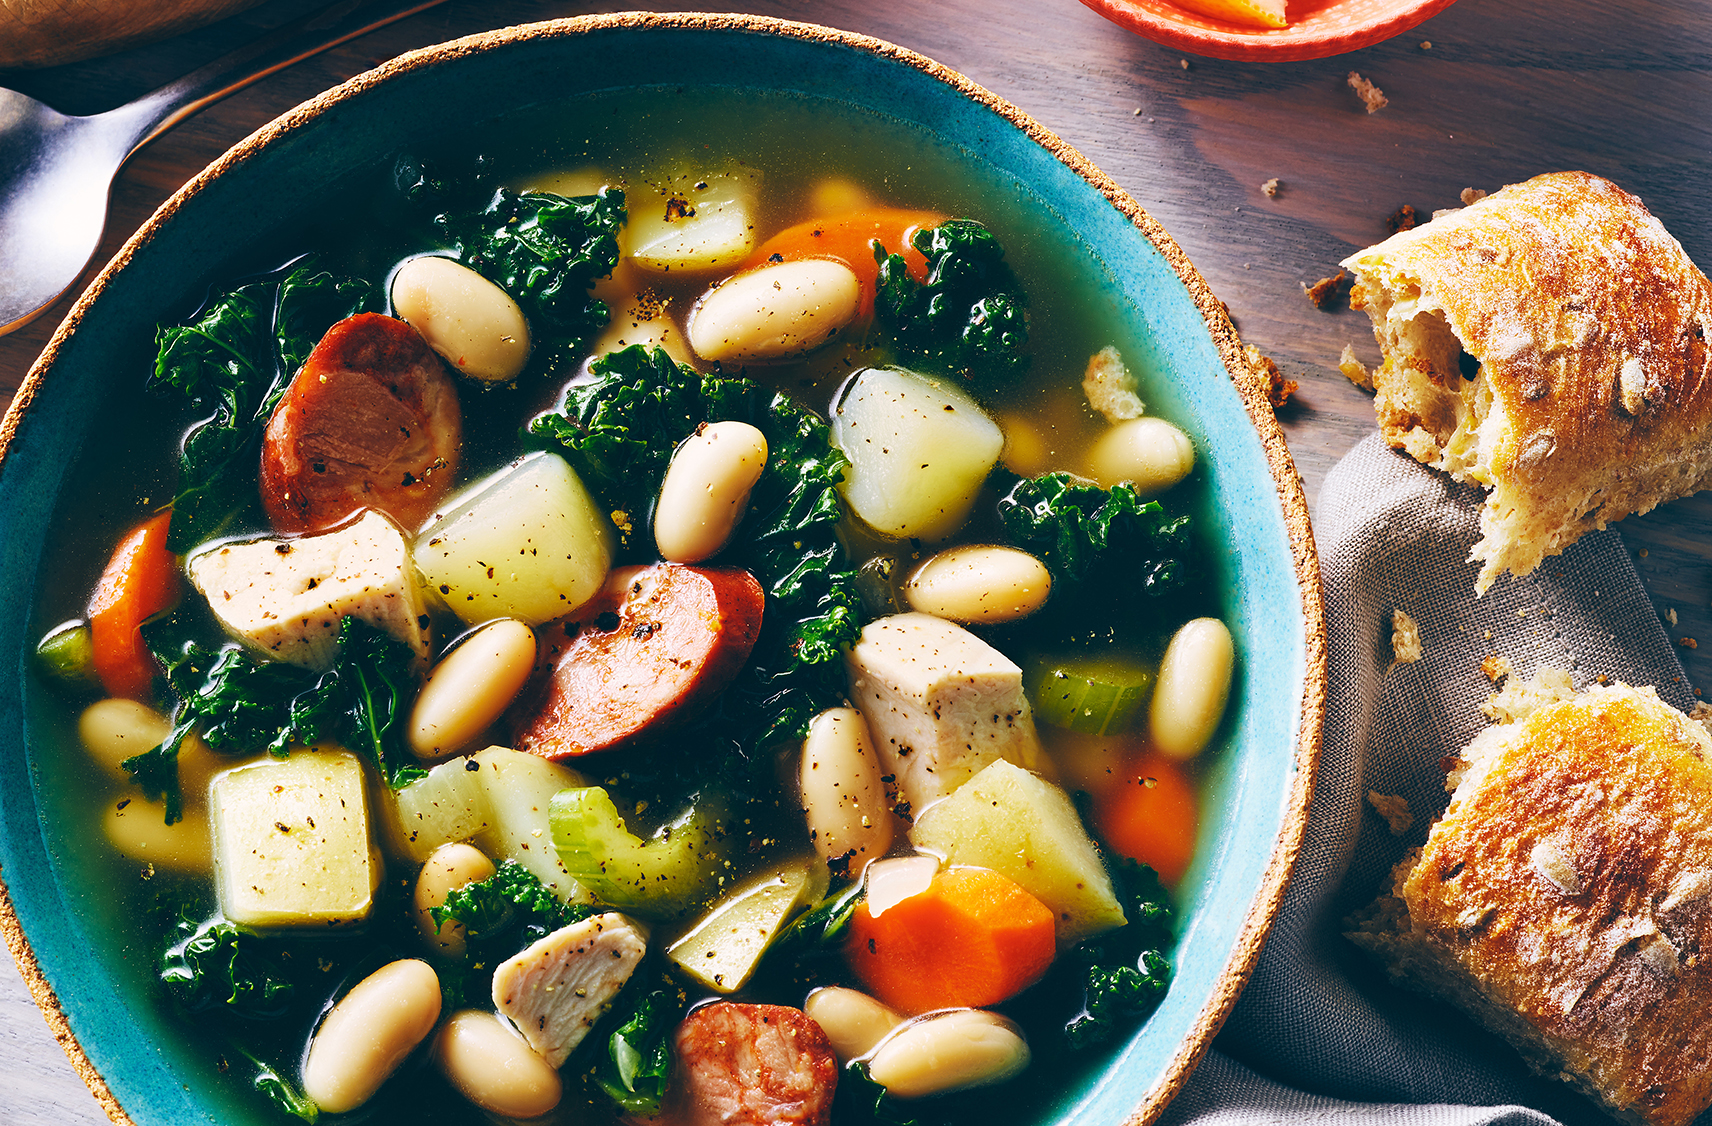 A soup of kale, chorizo, white beans, celery and potato in a clear broth